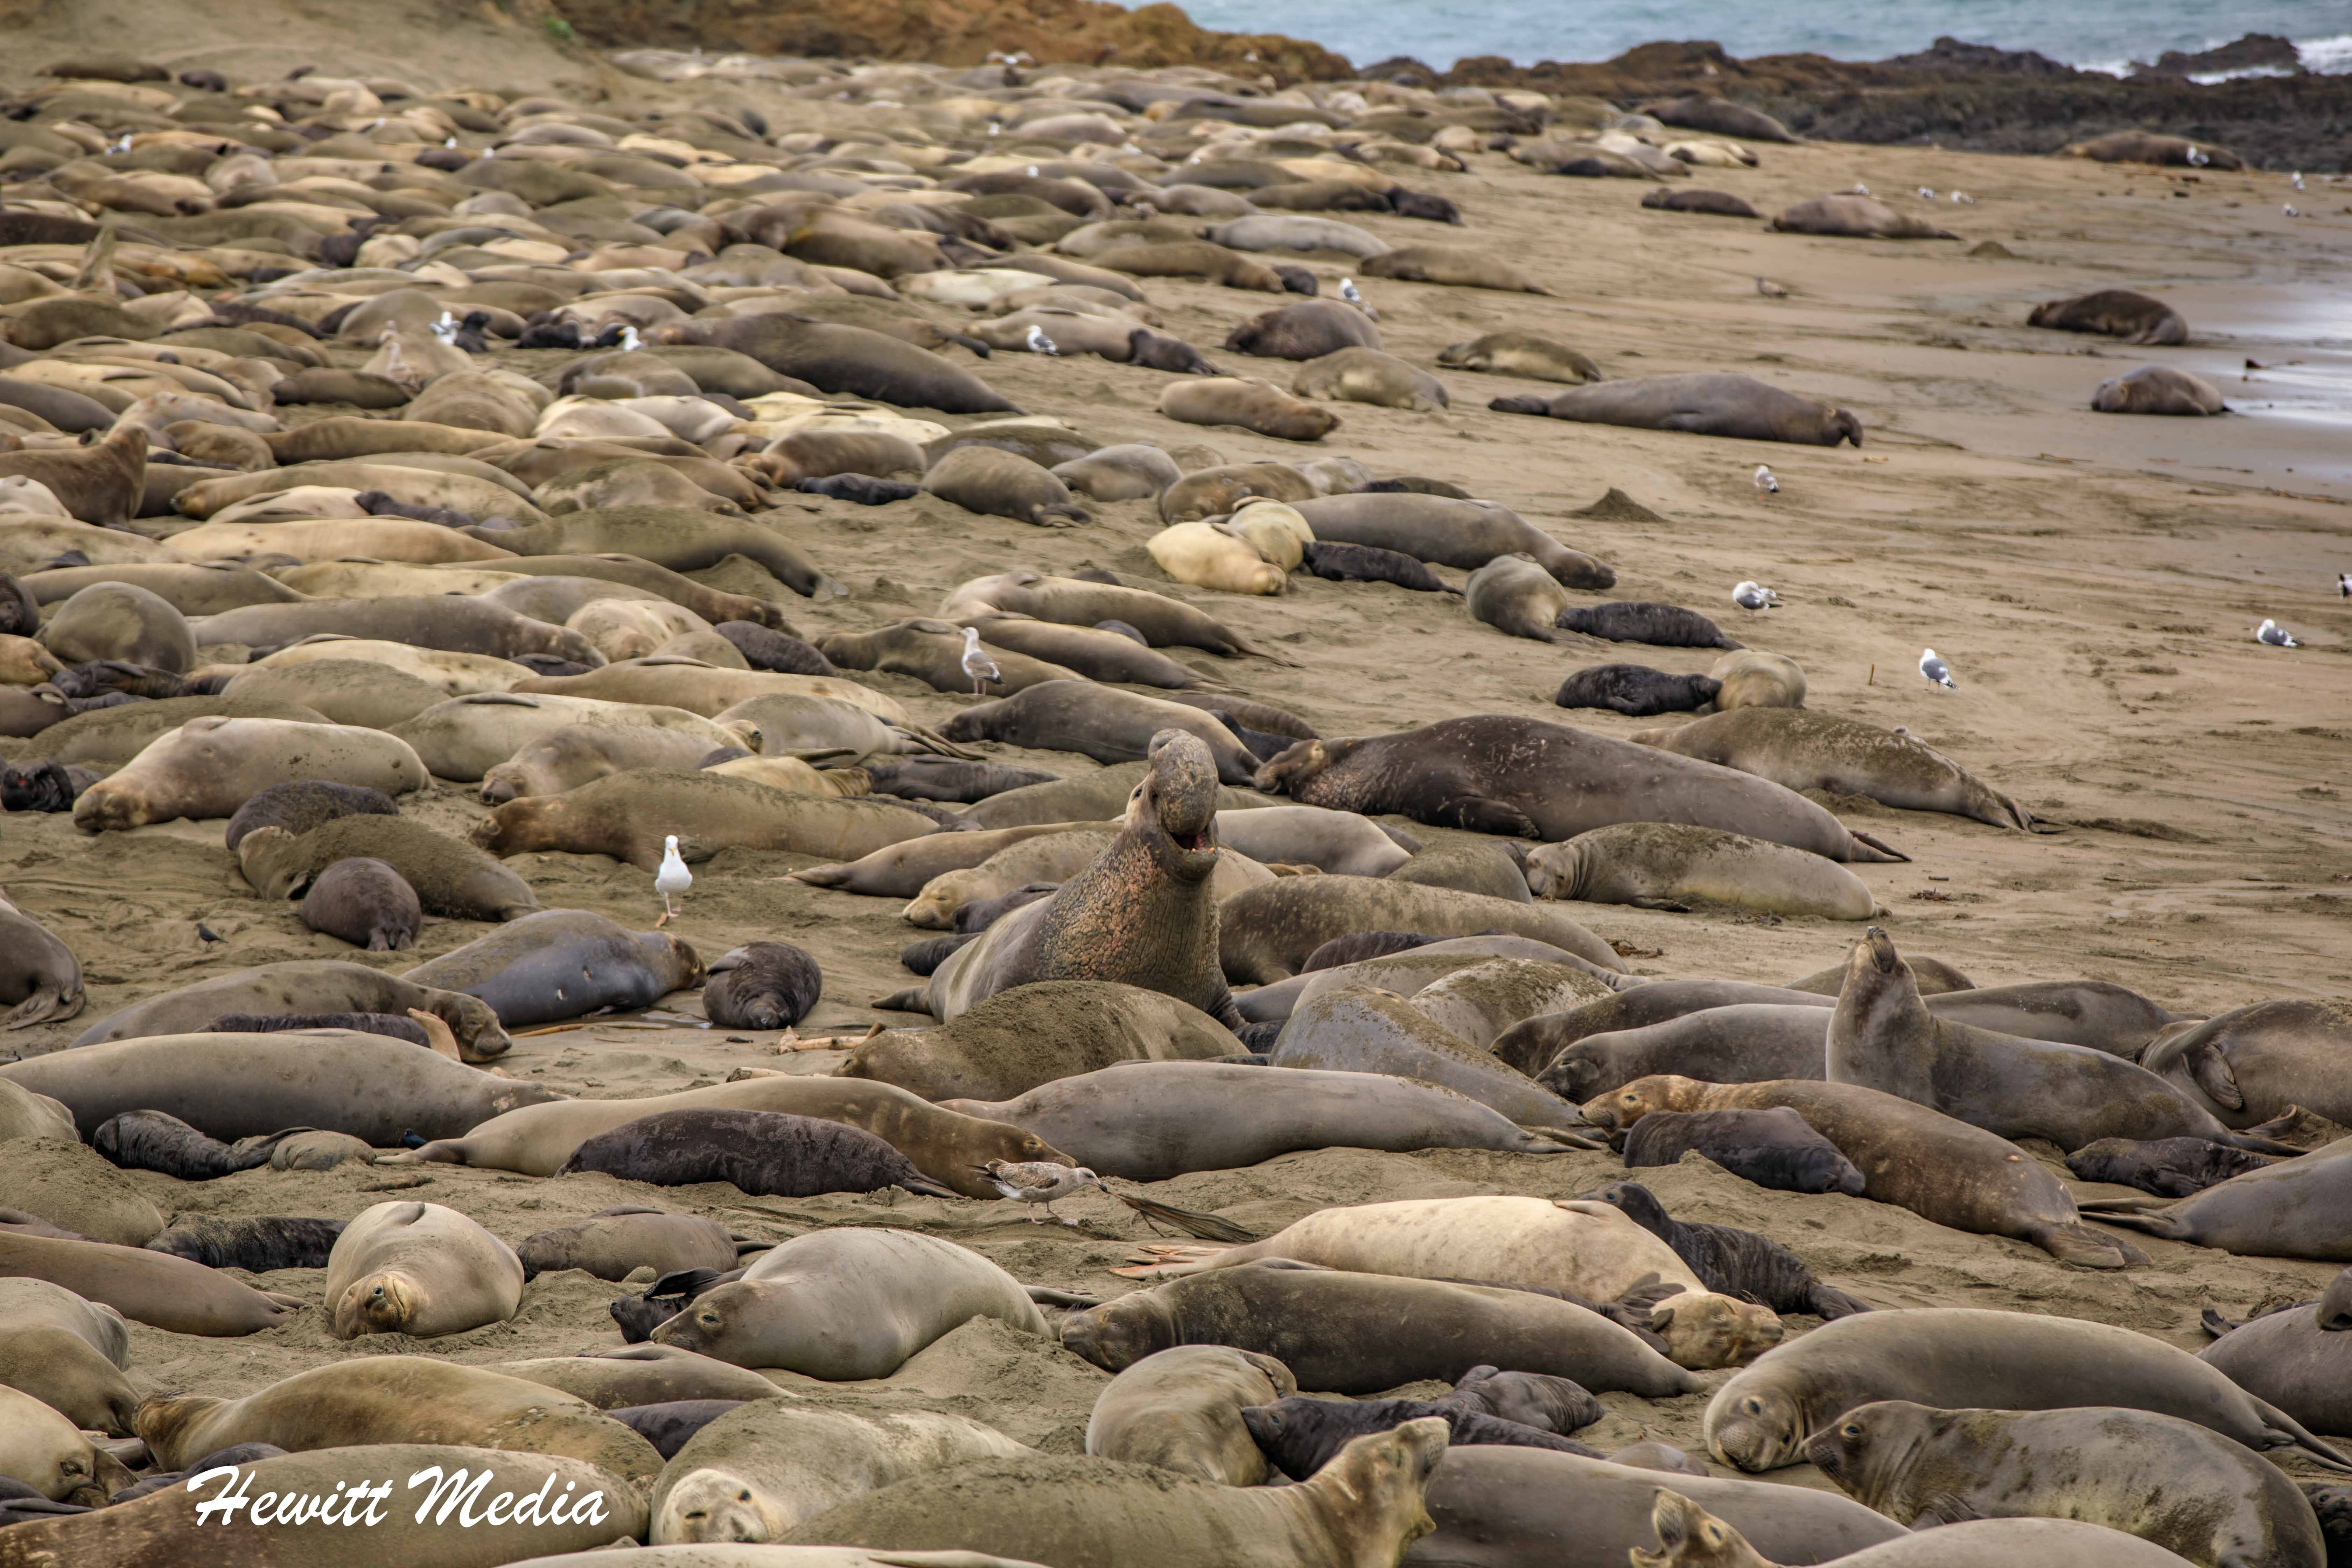 Northern Elephant Seal Rookery at Point Piedras Blancas